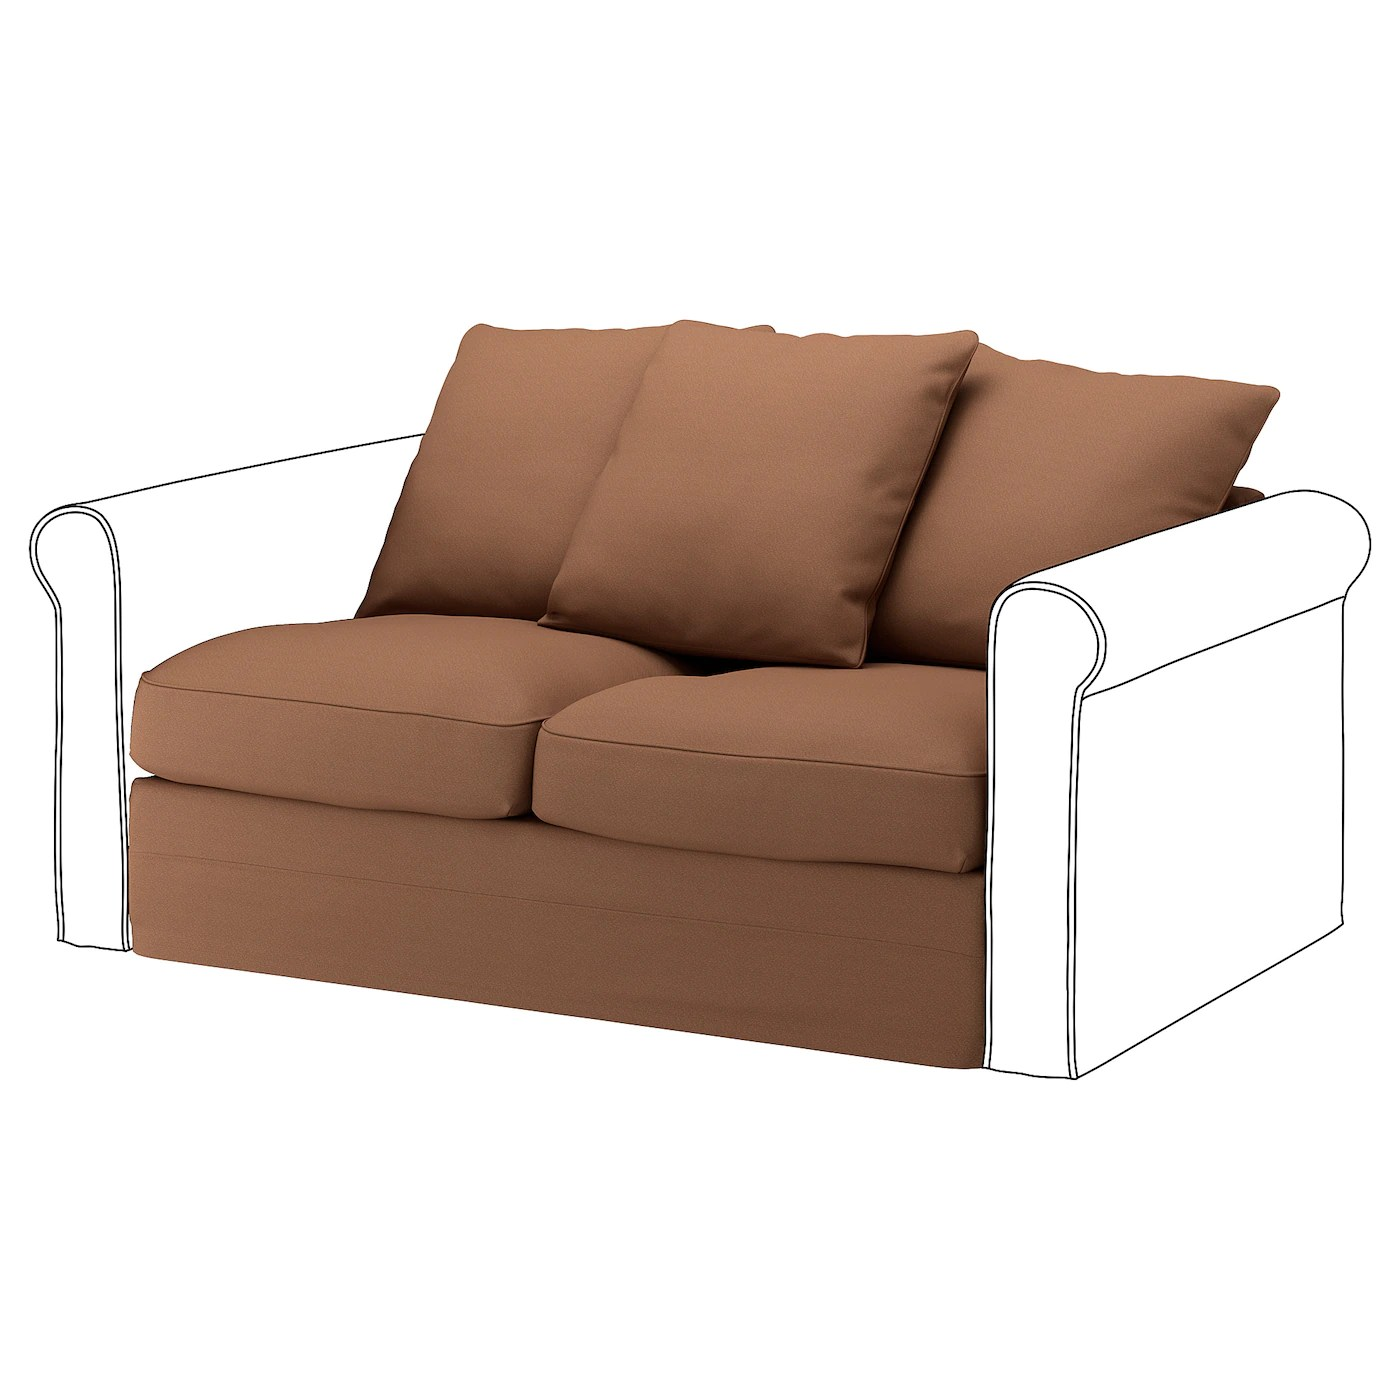 sofas n more nz mitc gold sleeper sofa bloomingdales settees couches and ikea